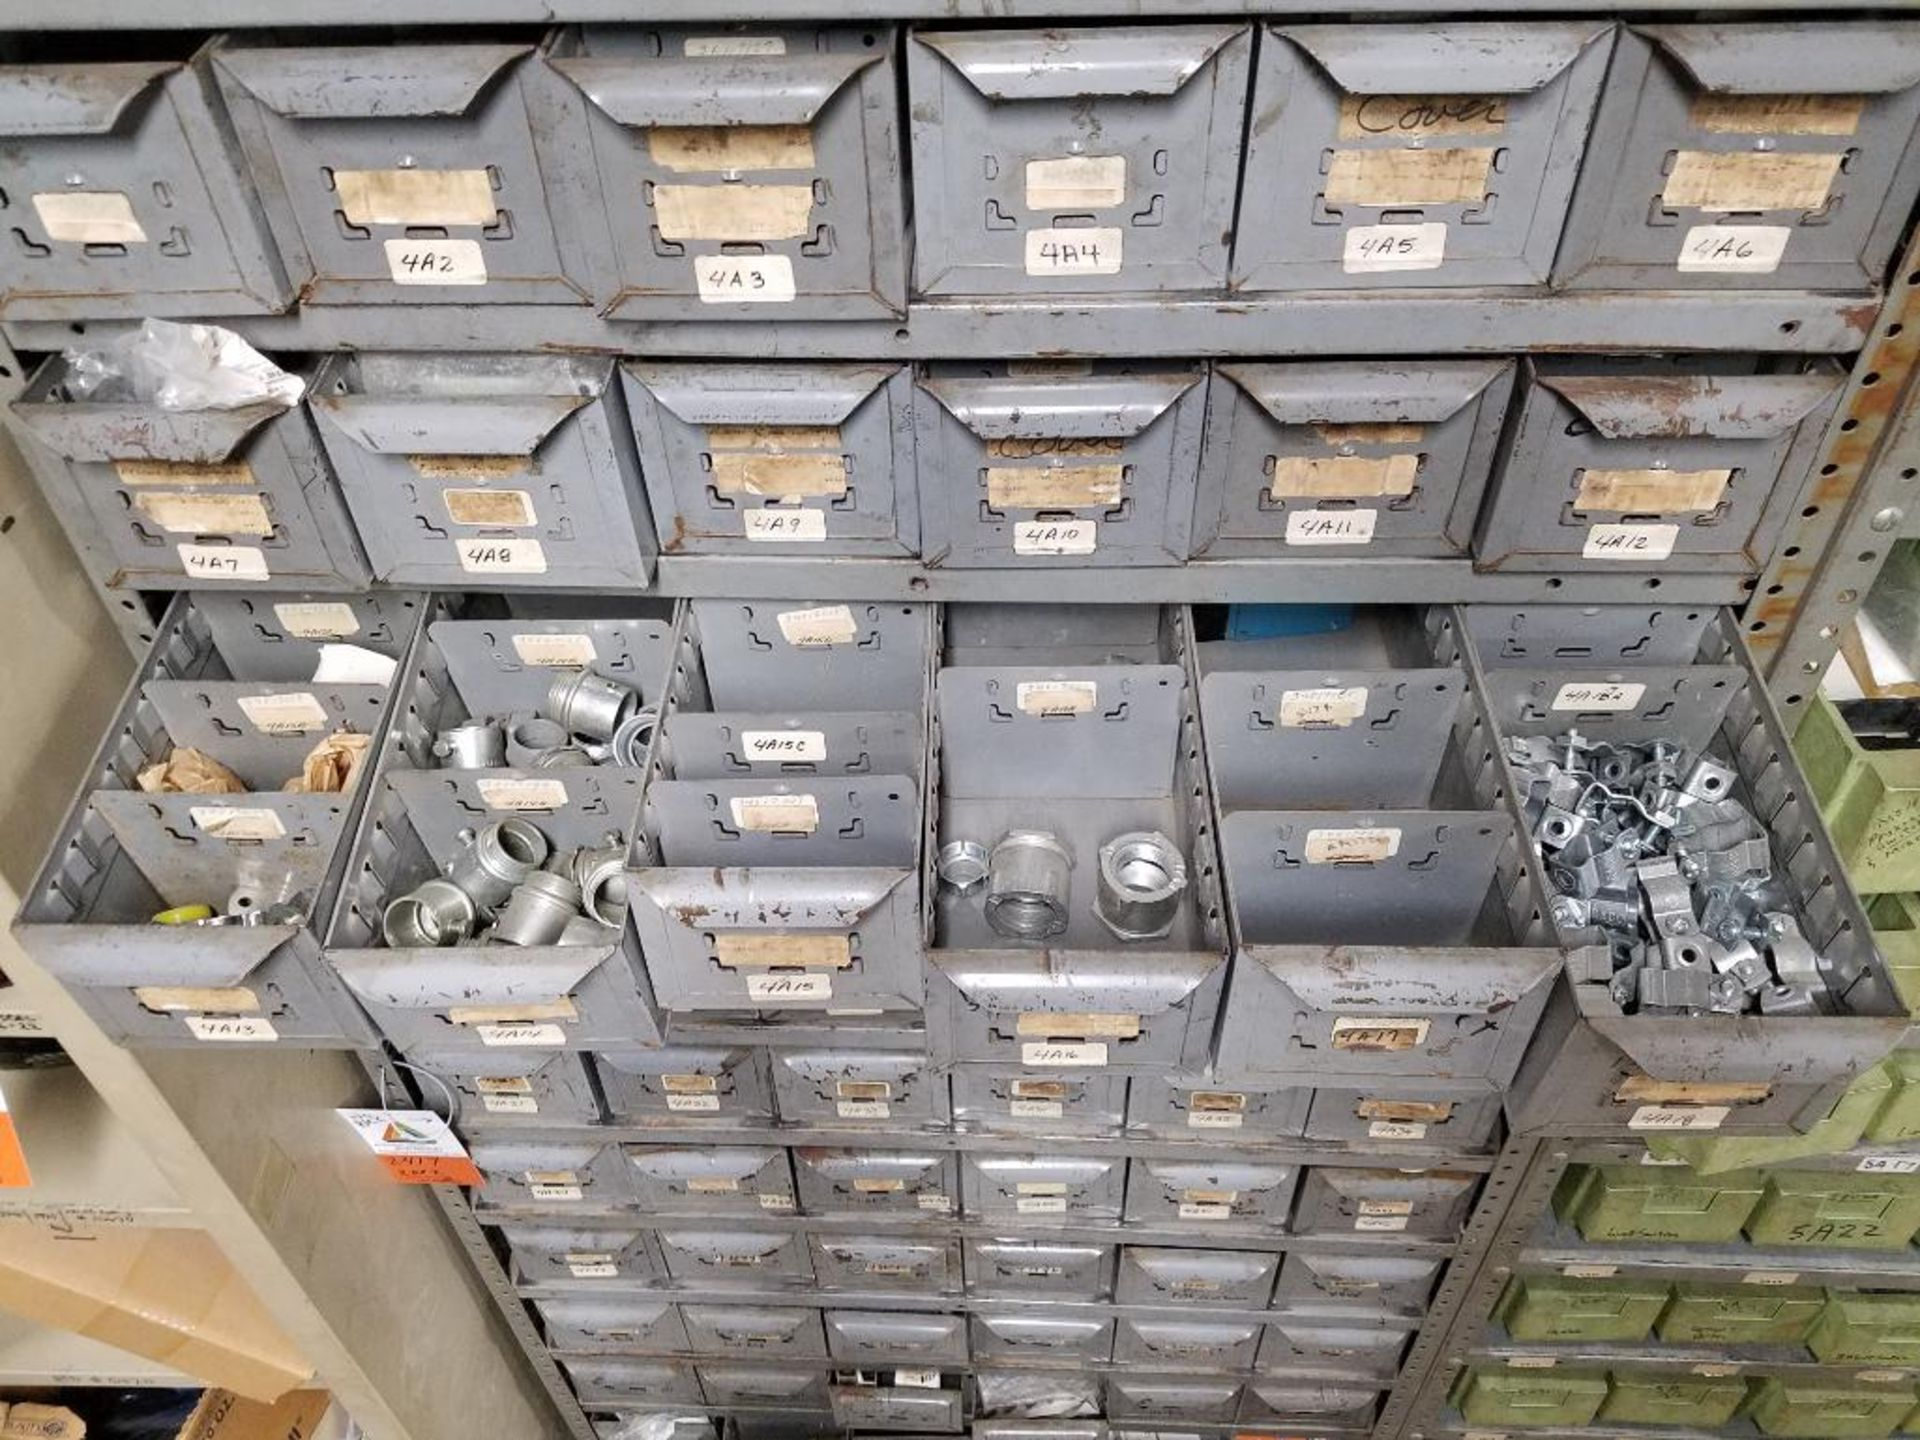 various electrical components - Image 16 of 27